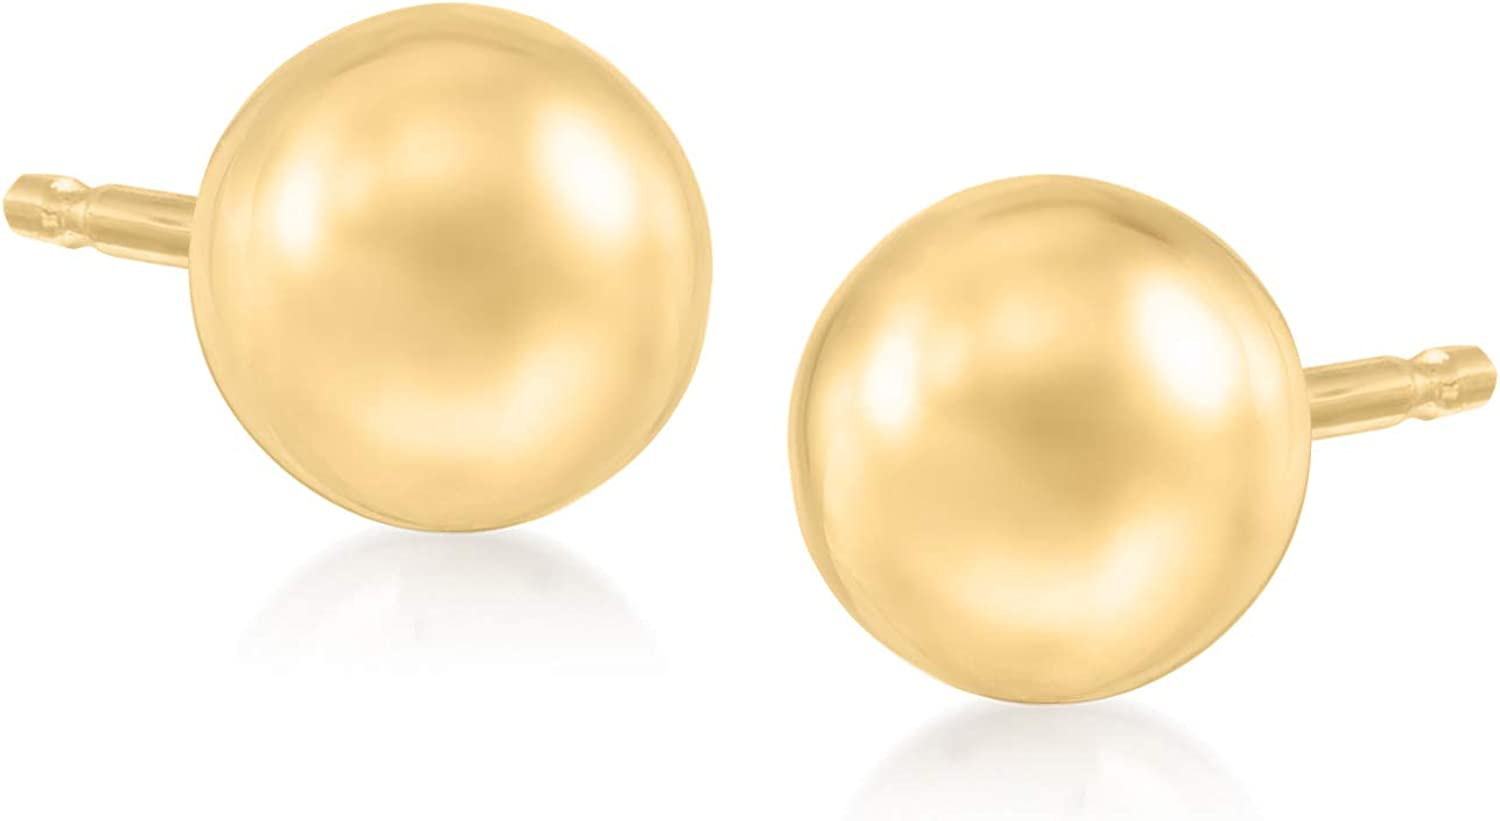 Engagement 6MM Ball Studs Earrings Wedding Gift Yellow Gold .925 Sterling Silver anniversary